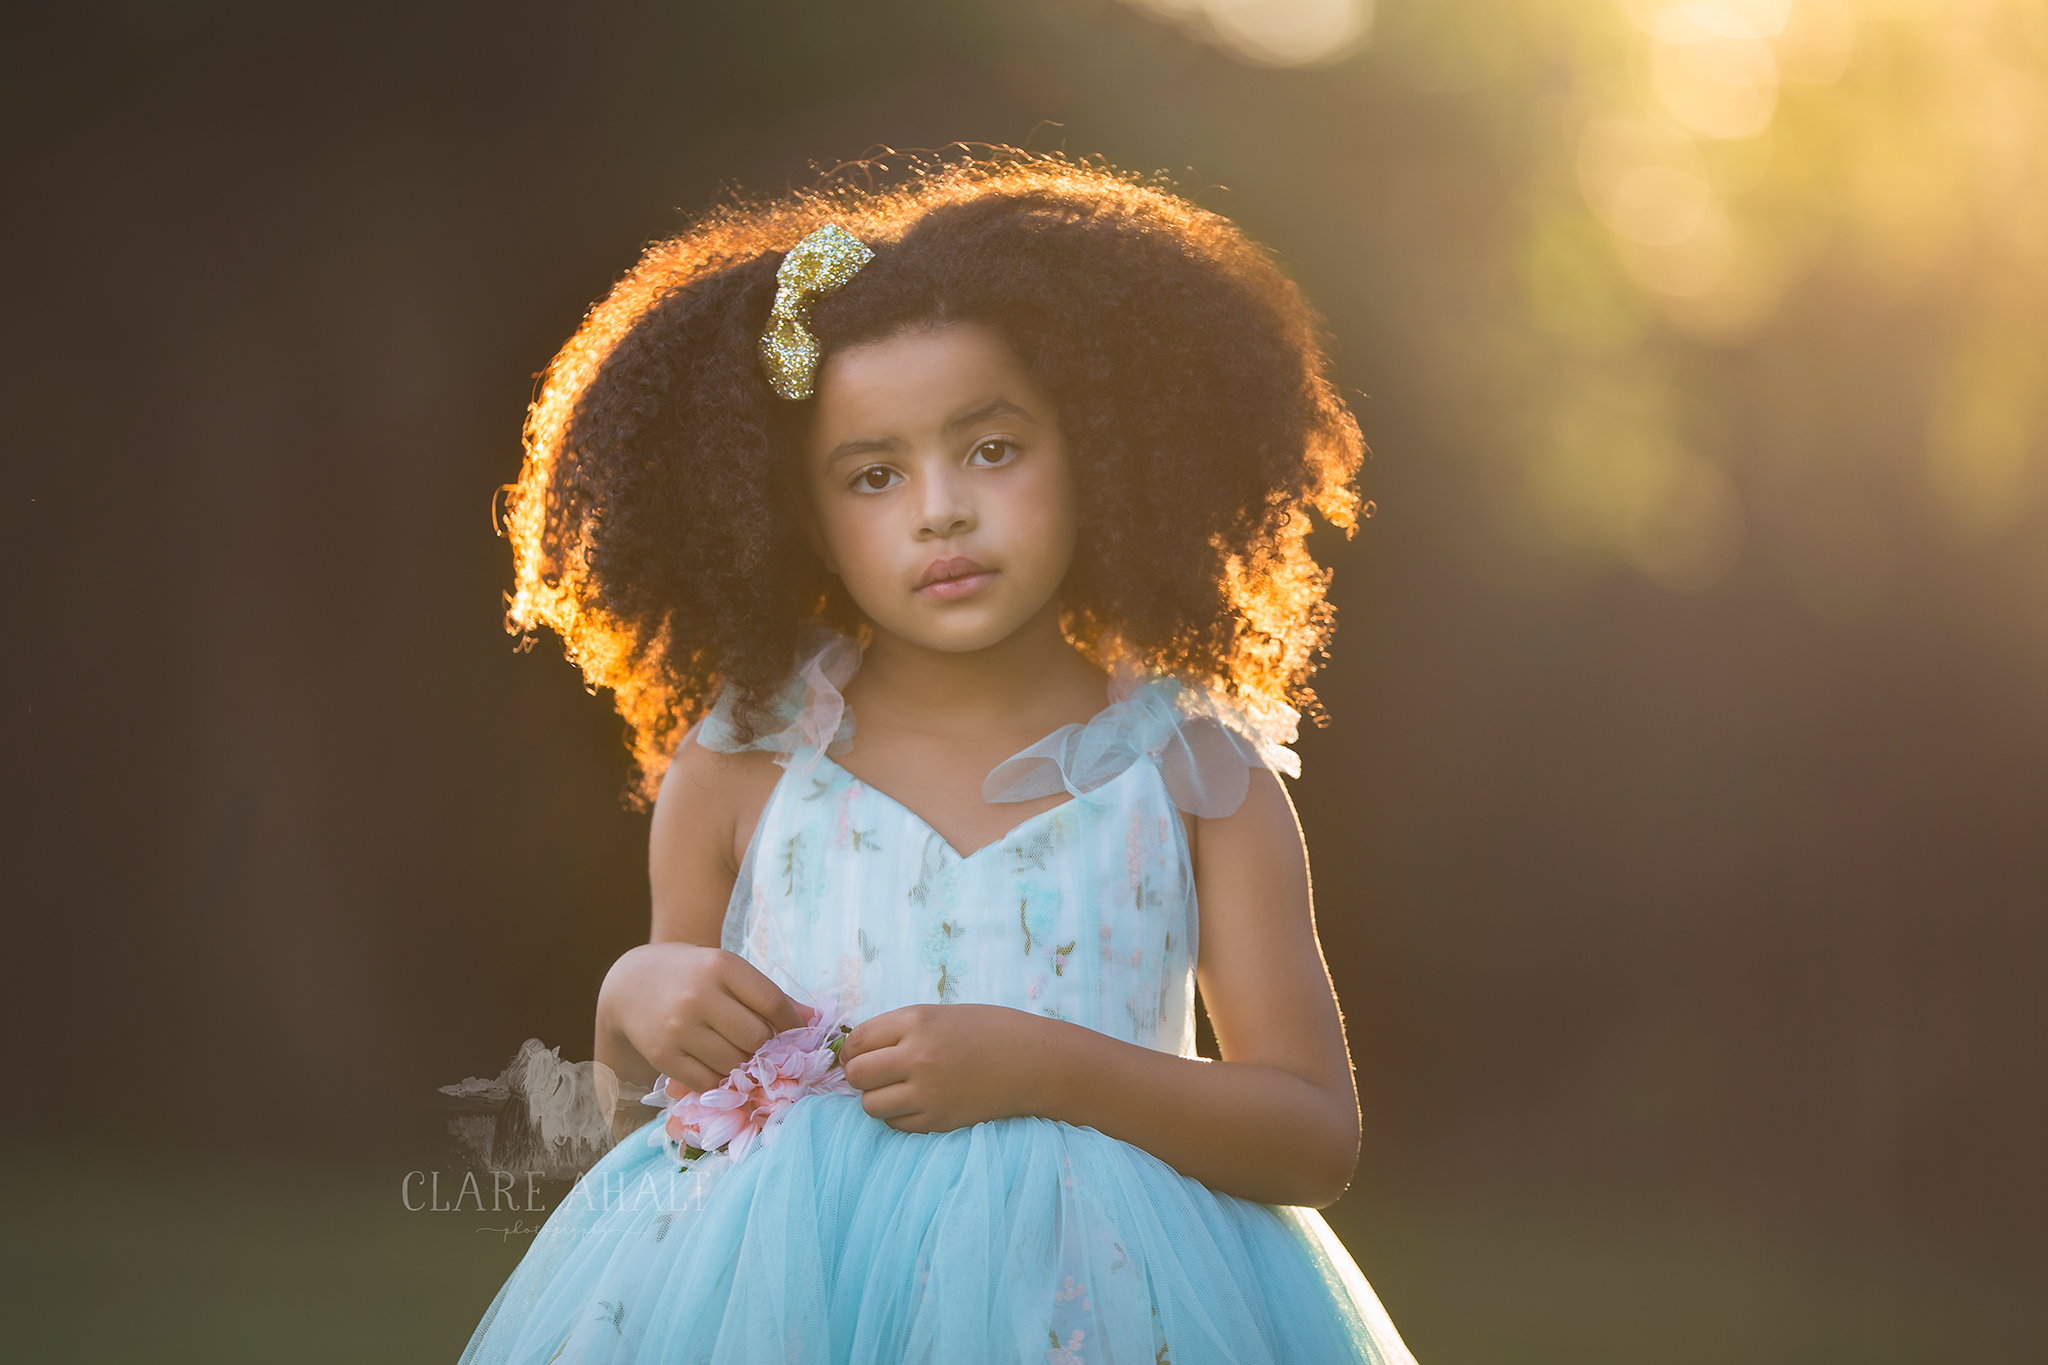 Portrait of a chid taken at a Meg Bitton Photography workshop by Clare Ahalt Photography